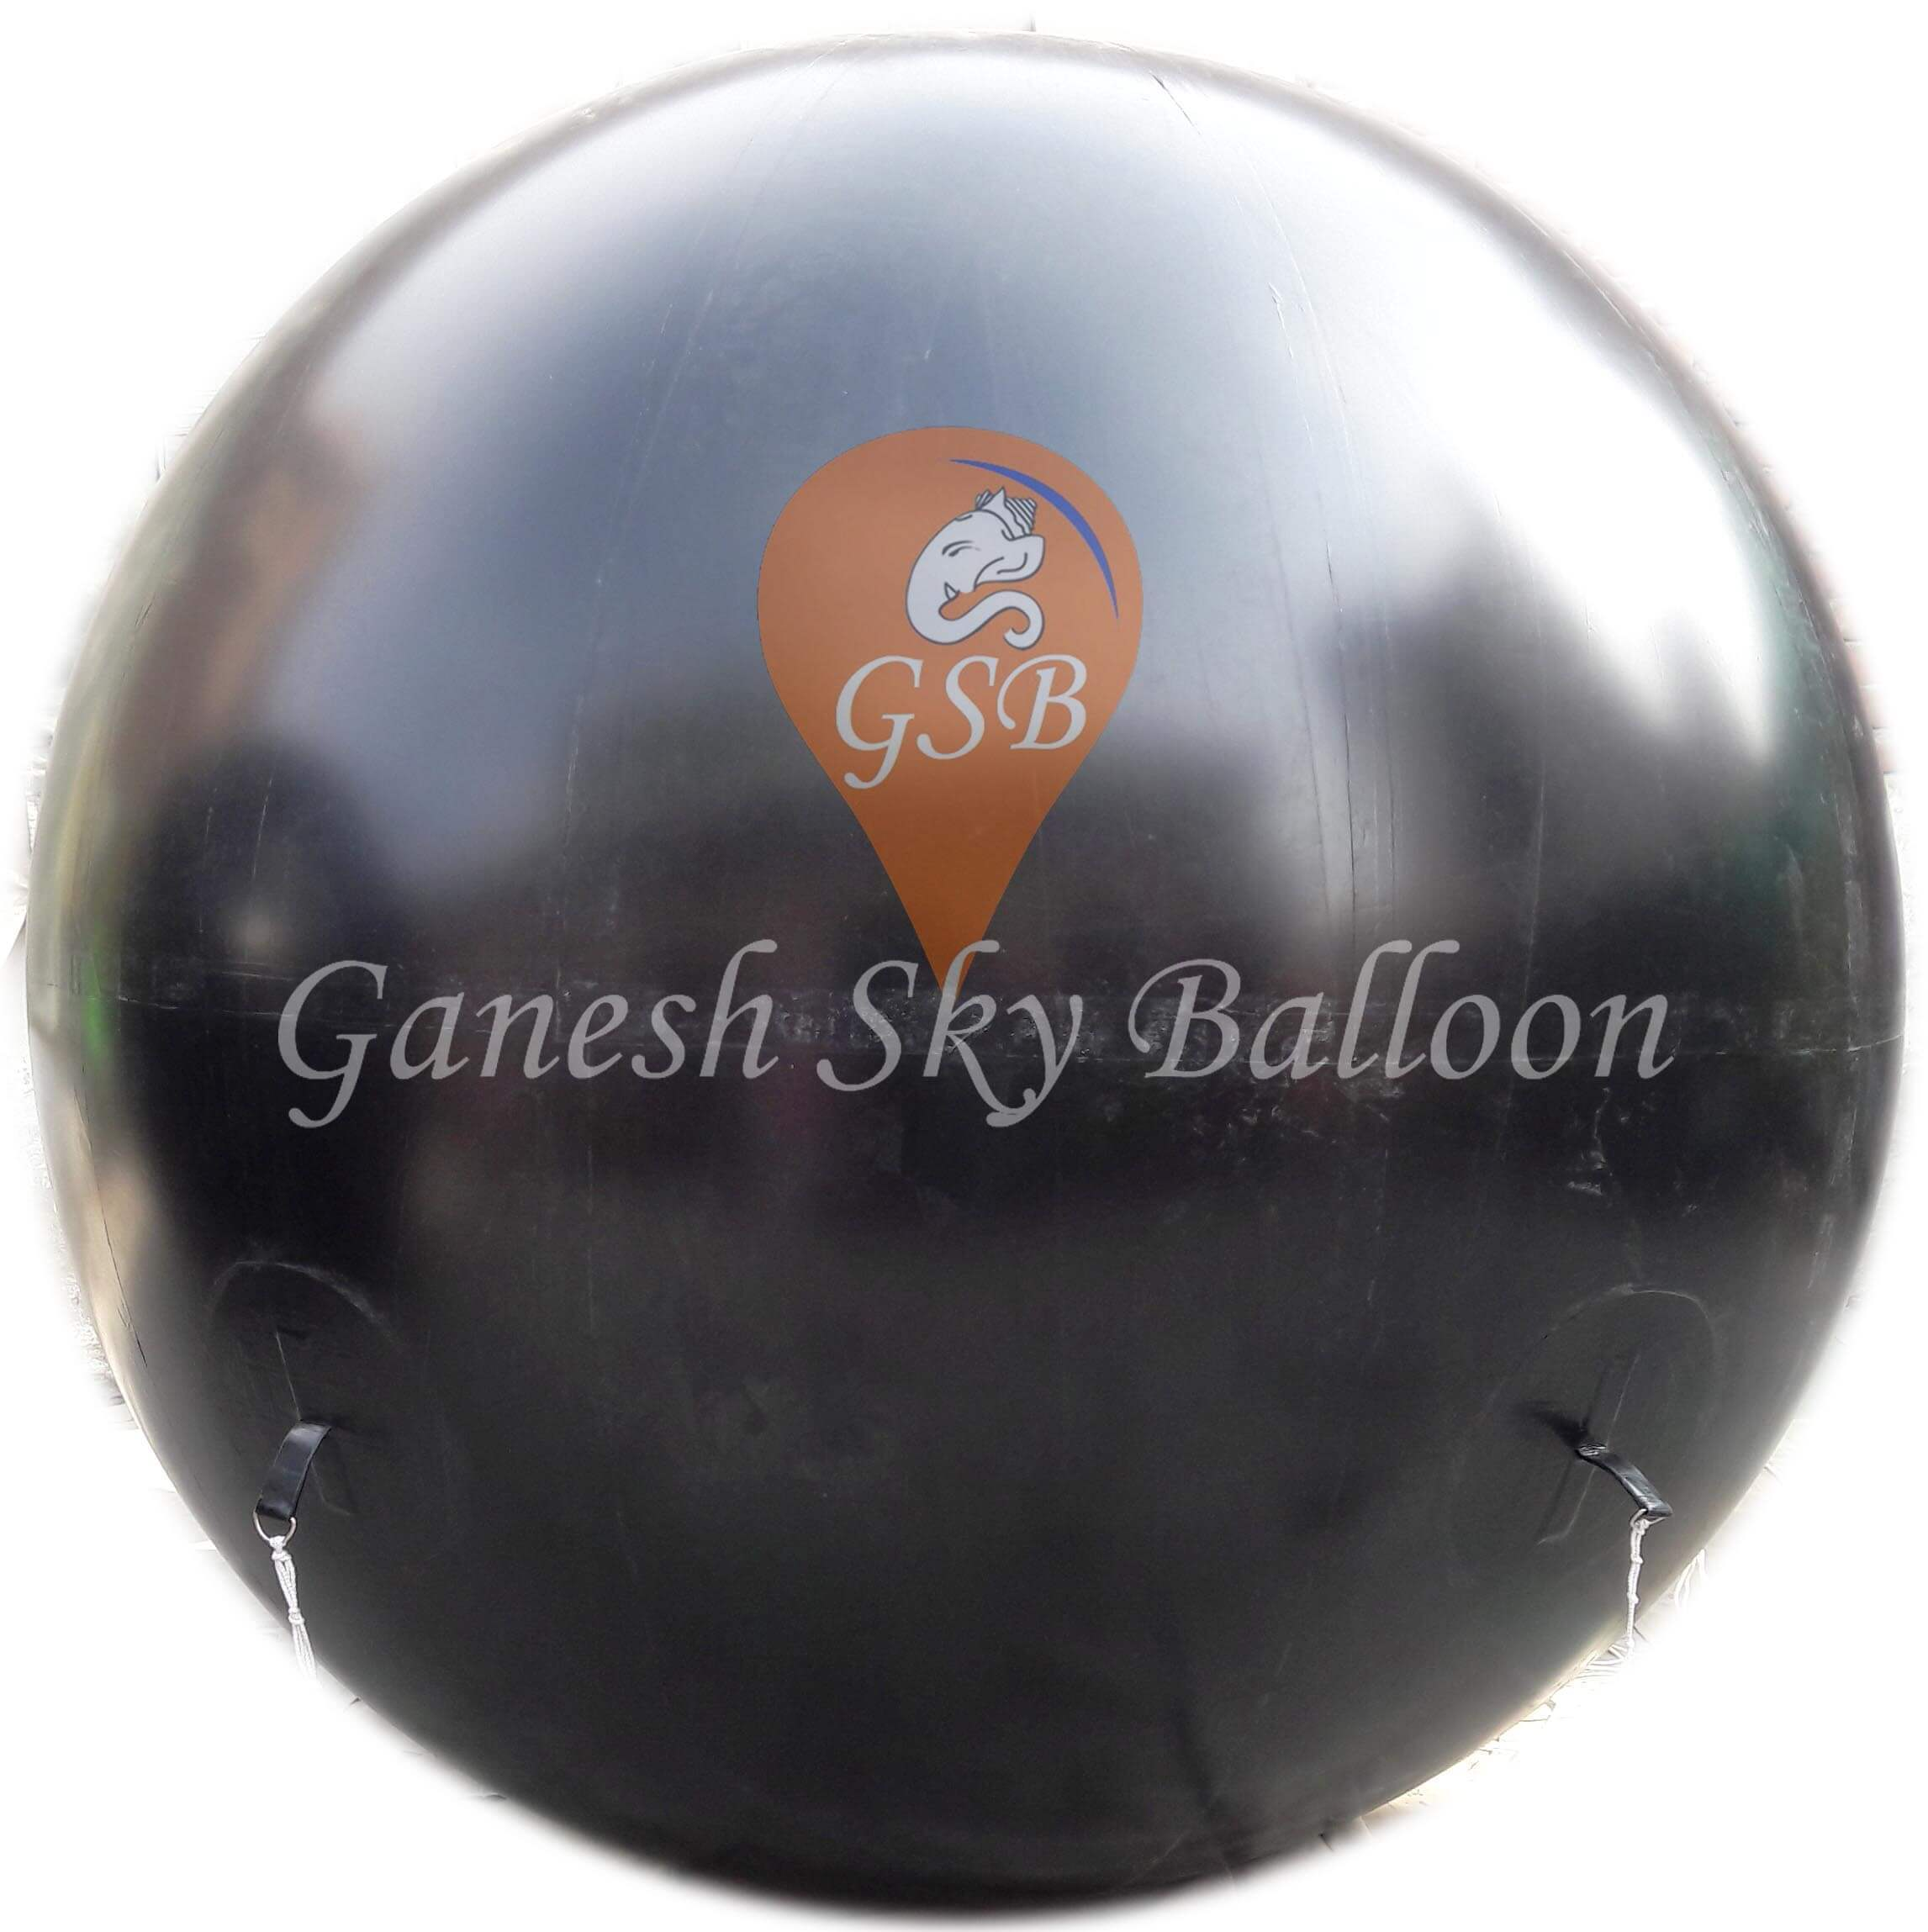 Advertising Sky Balloon supplier